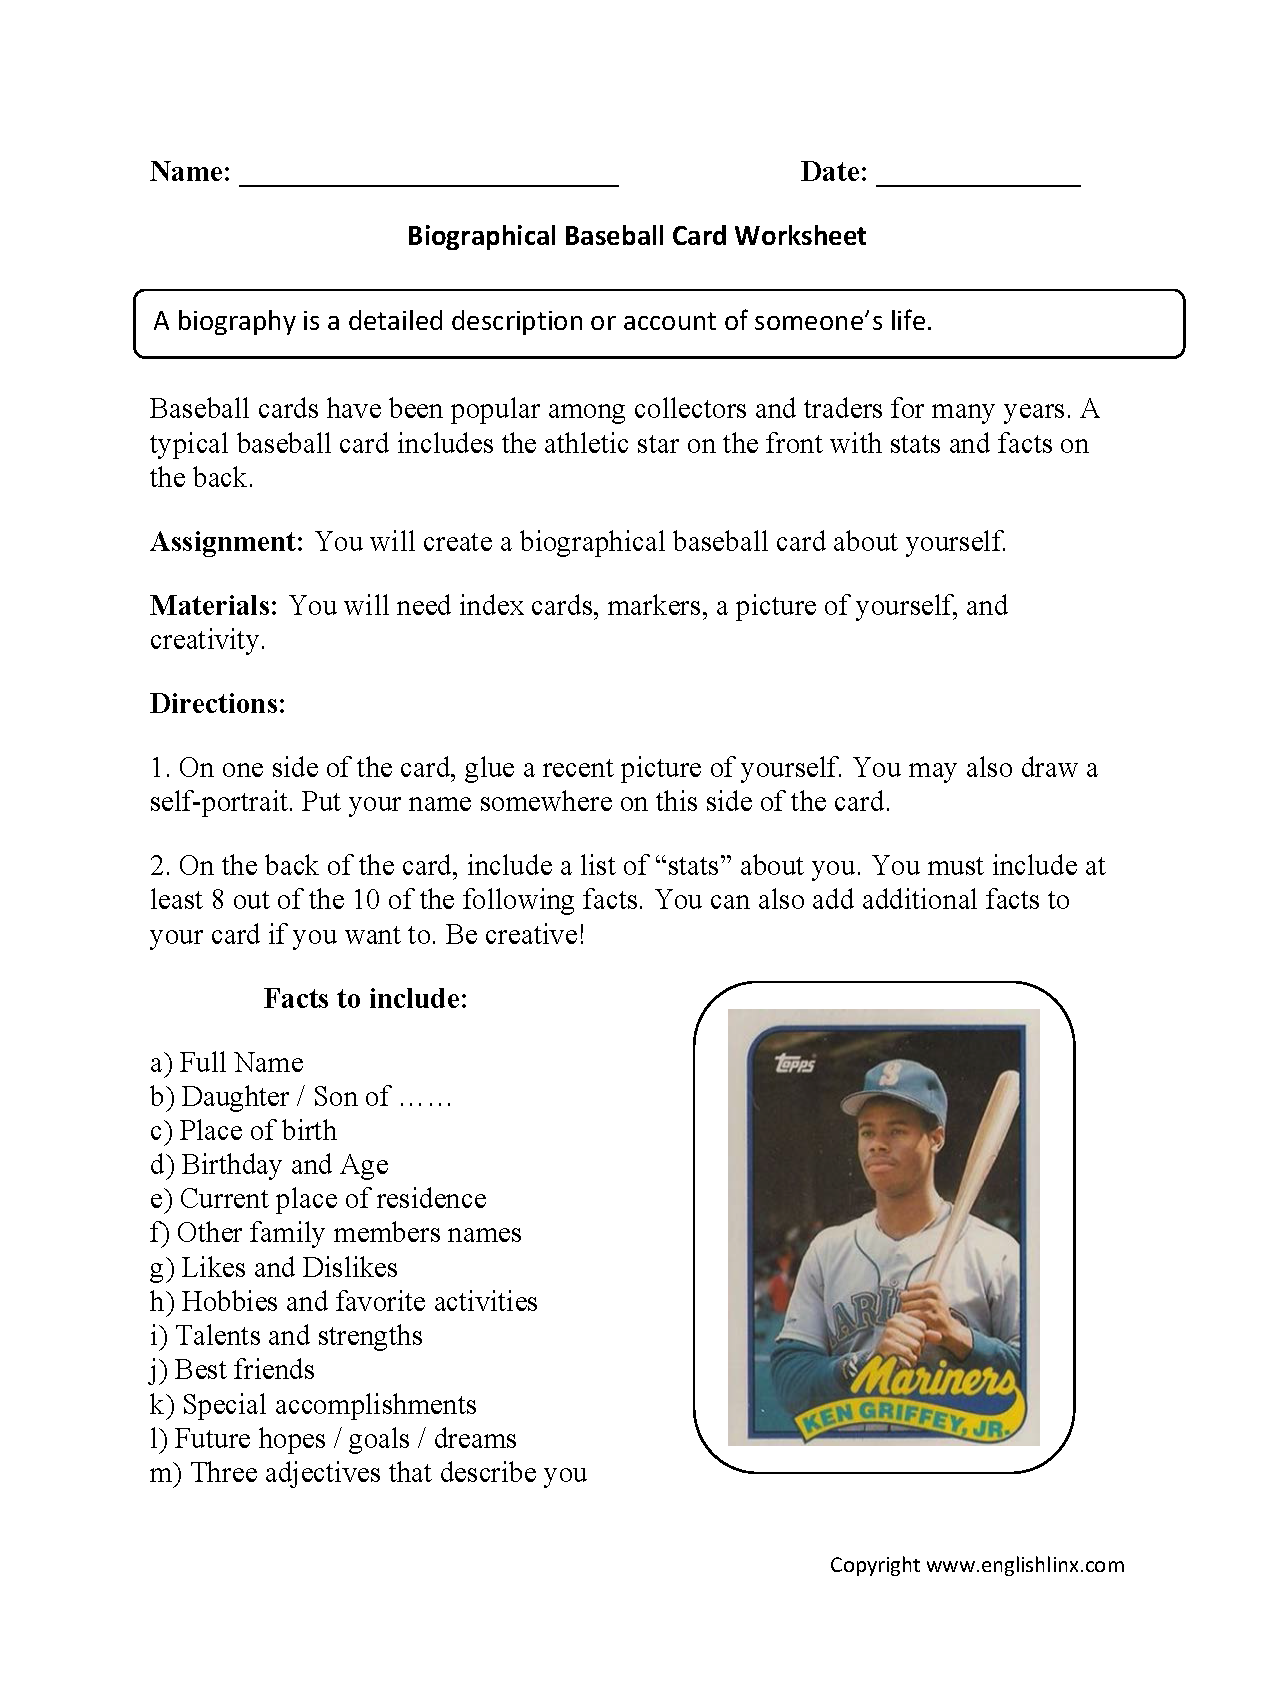 Biography Baseball Card Back To School Worksheets